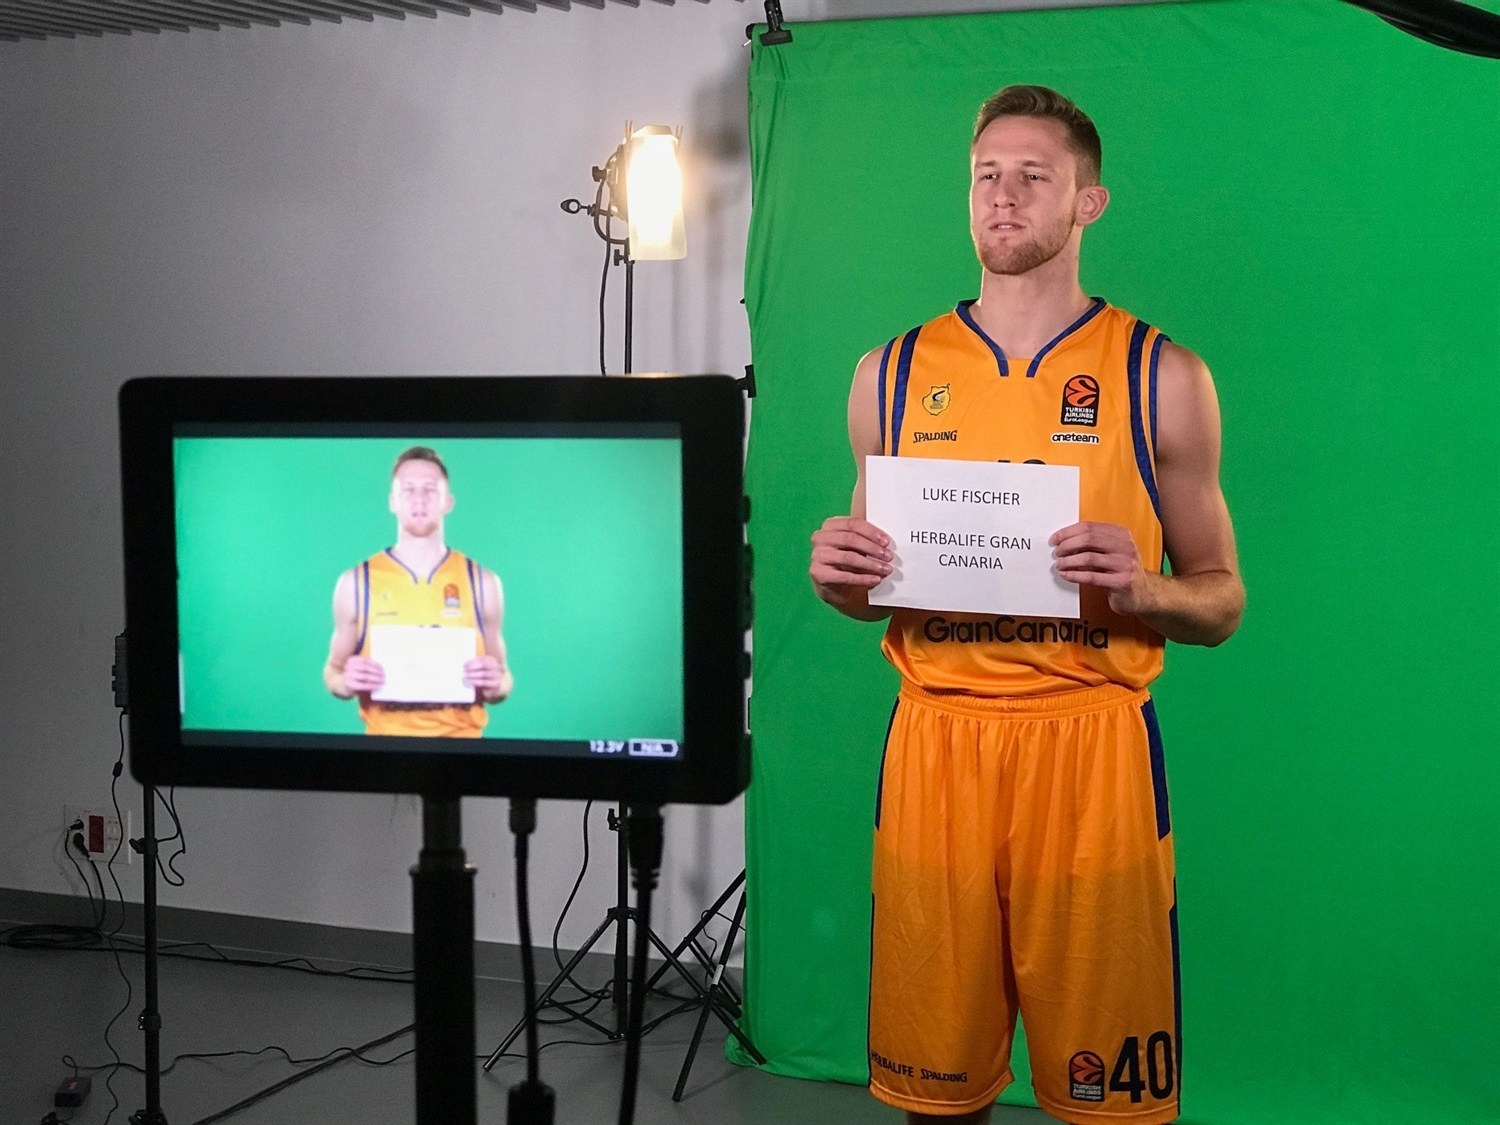 Luke Fischer - Herbalife Gran Canaria Media Day 2018 - EB18